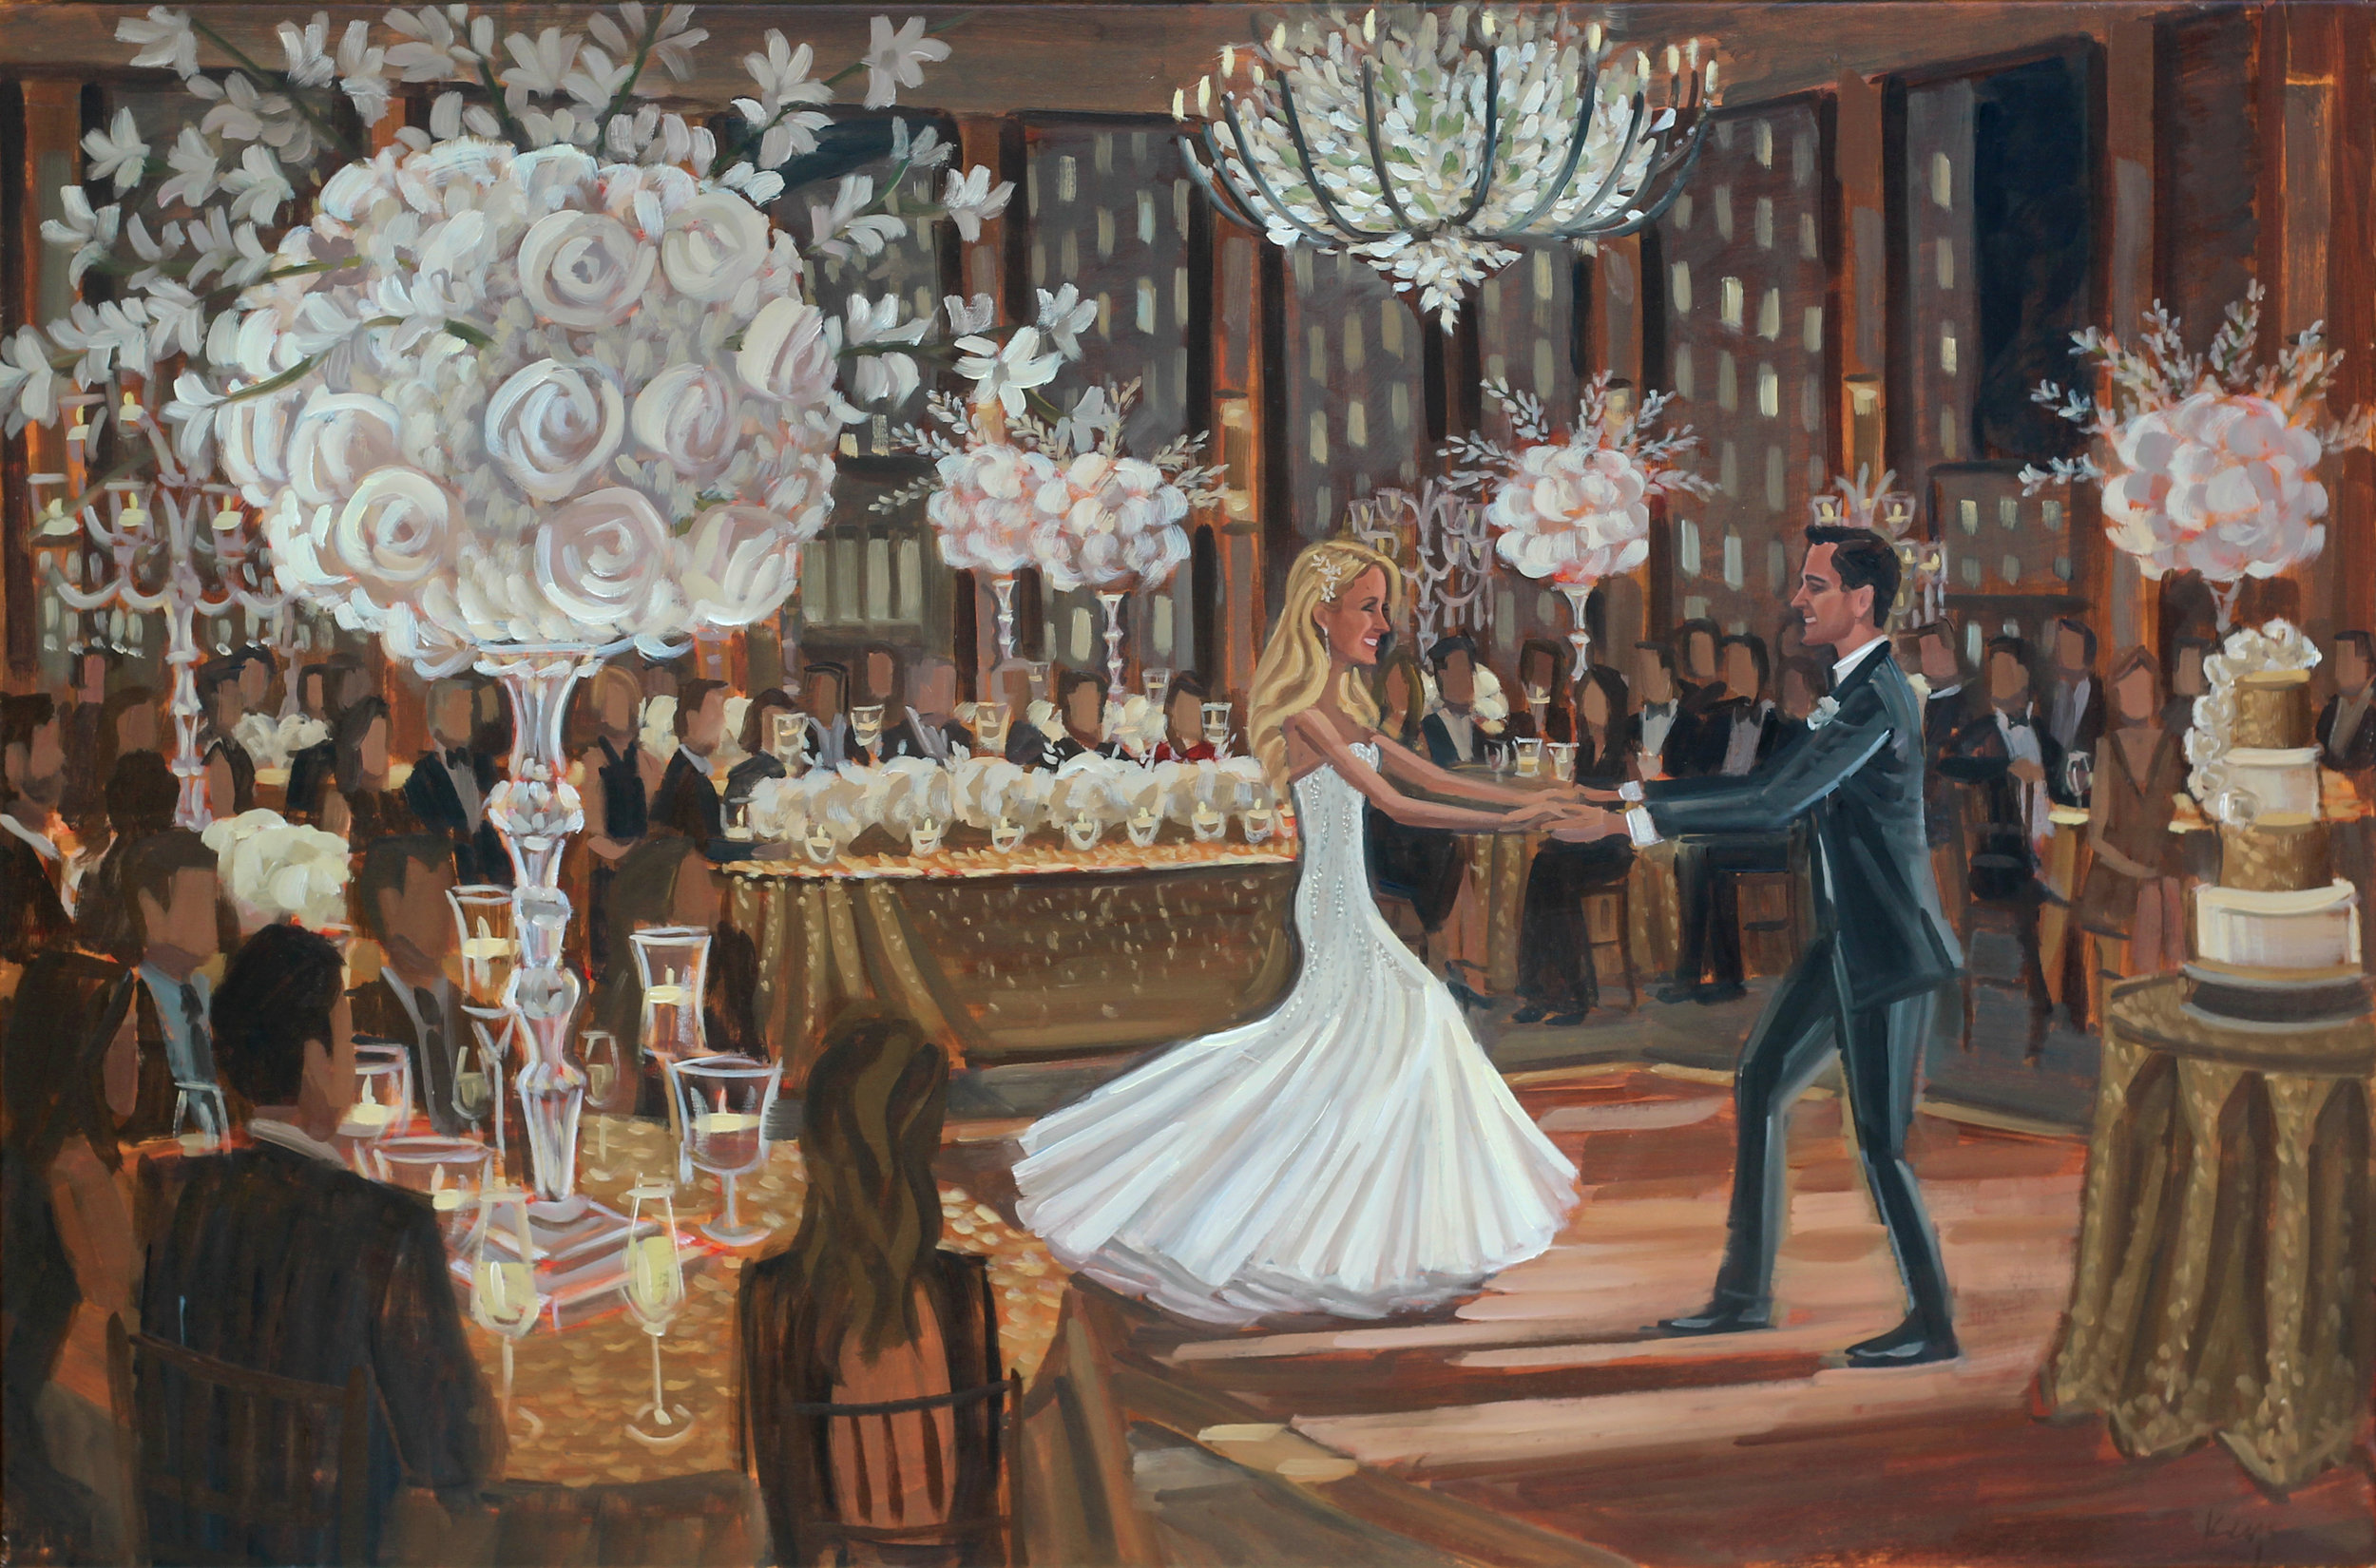 Live Wedding Painting | The Peninsula Chicago Hotel, Chicago, IL